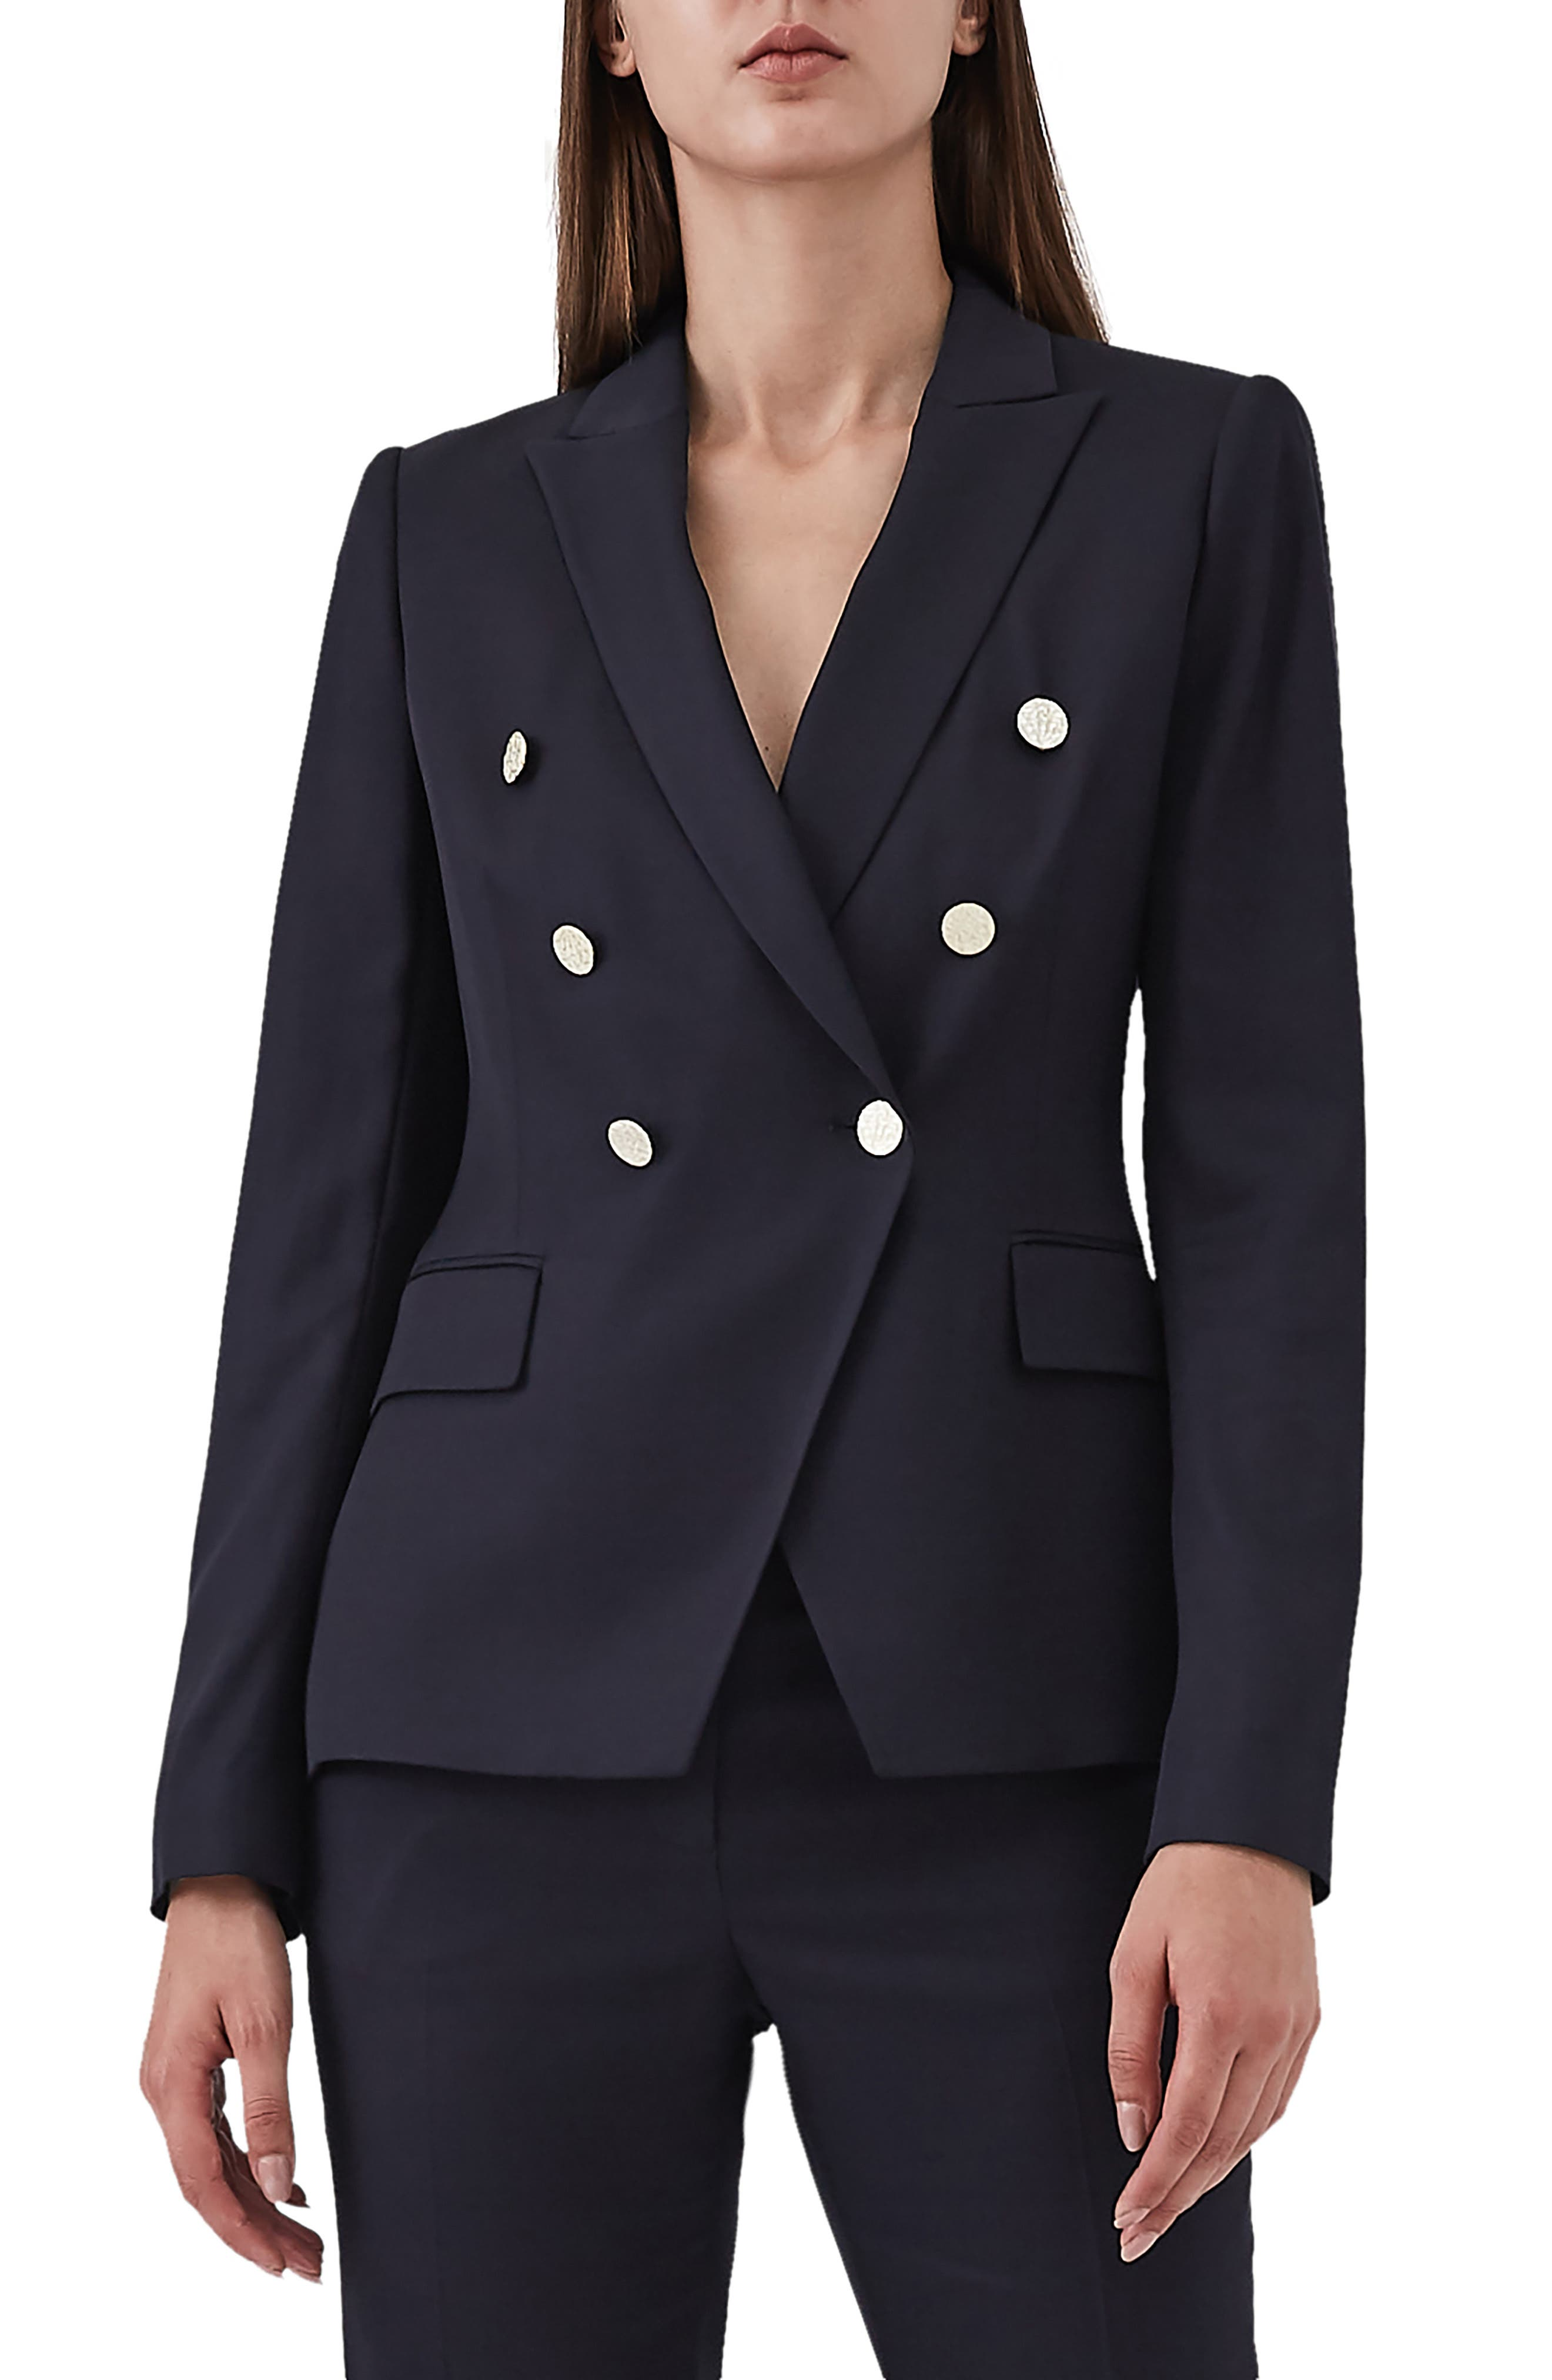 Tally Double Breasted Wool Blend Jacket,                             Main thumbnail 1, color,                             BLUE